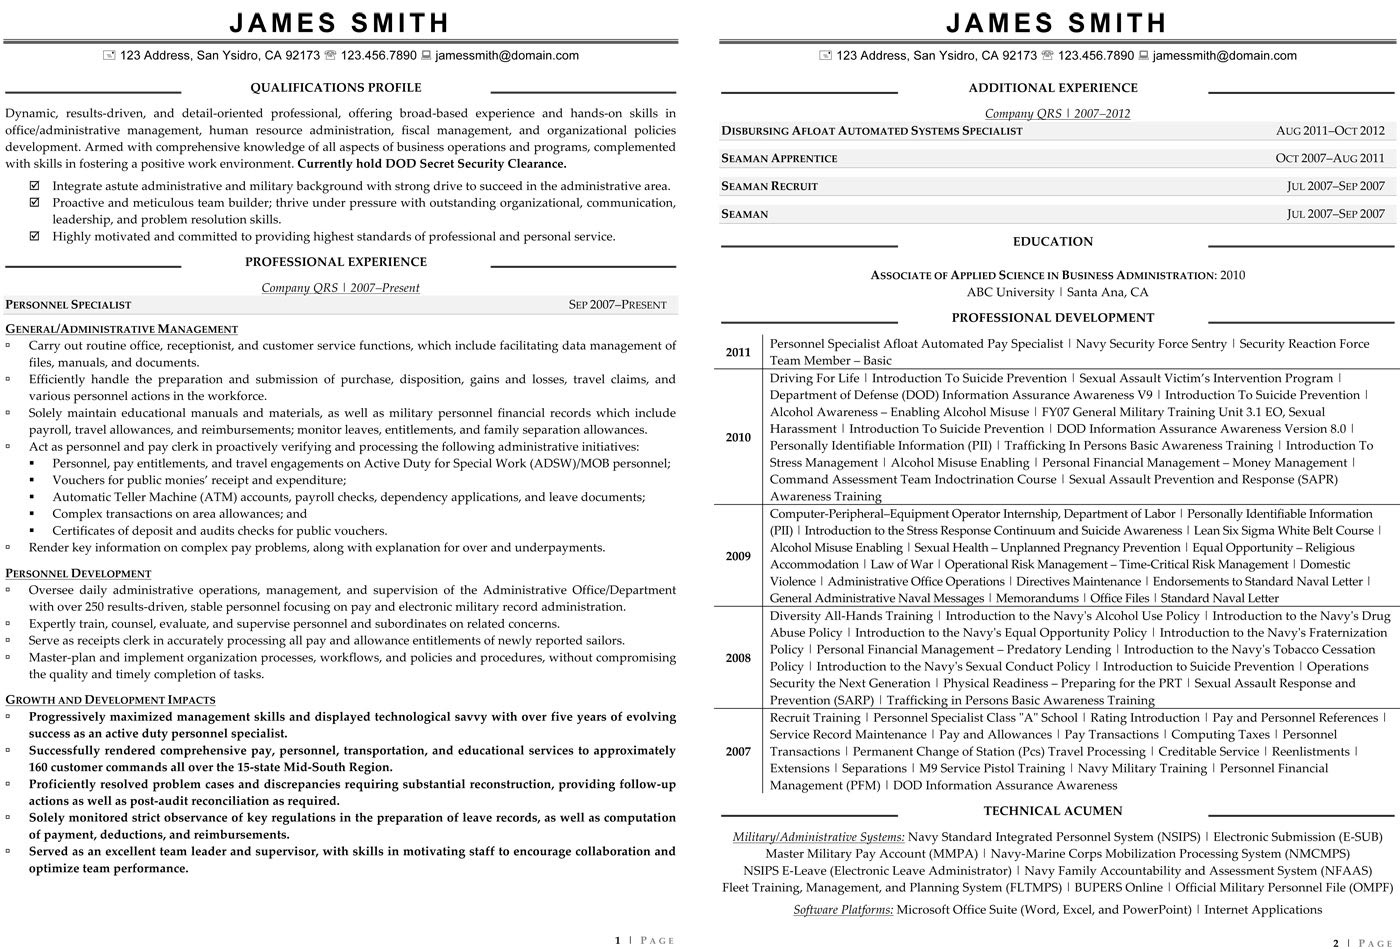 Human Resource Generalist Resume  Human Resources Resume Samples